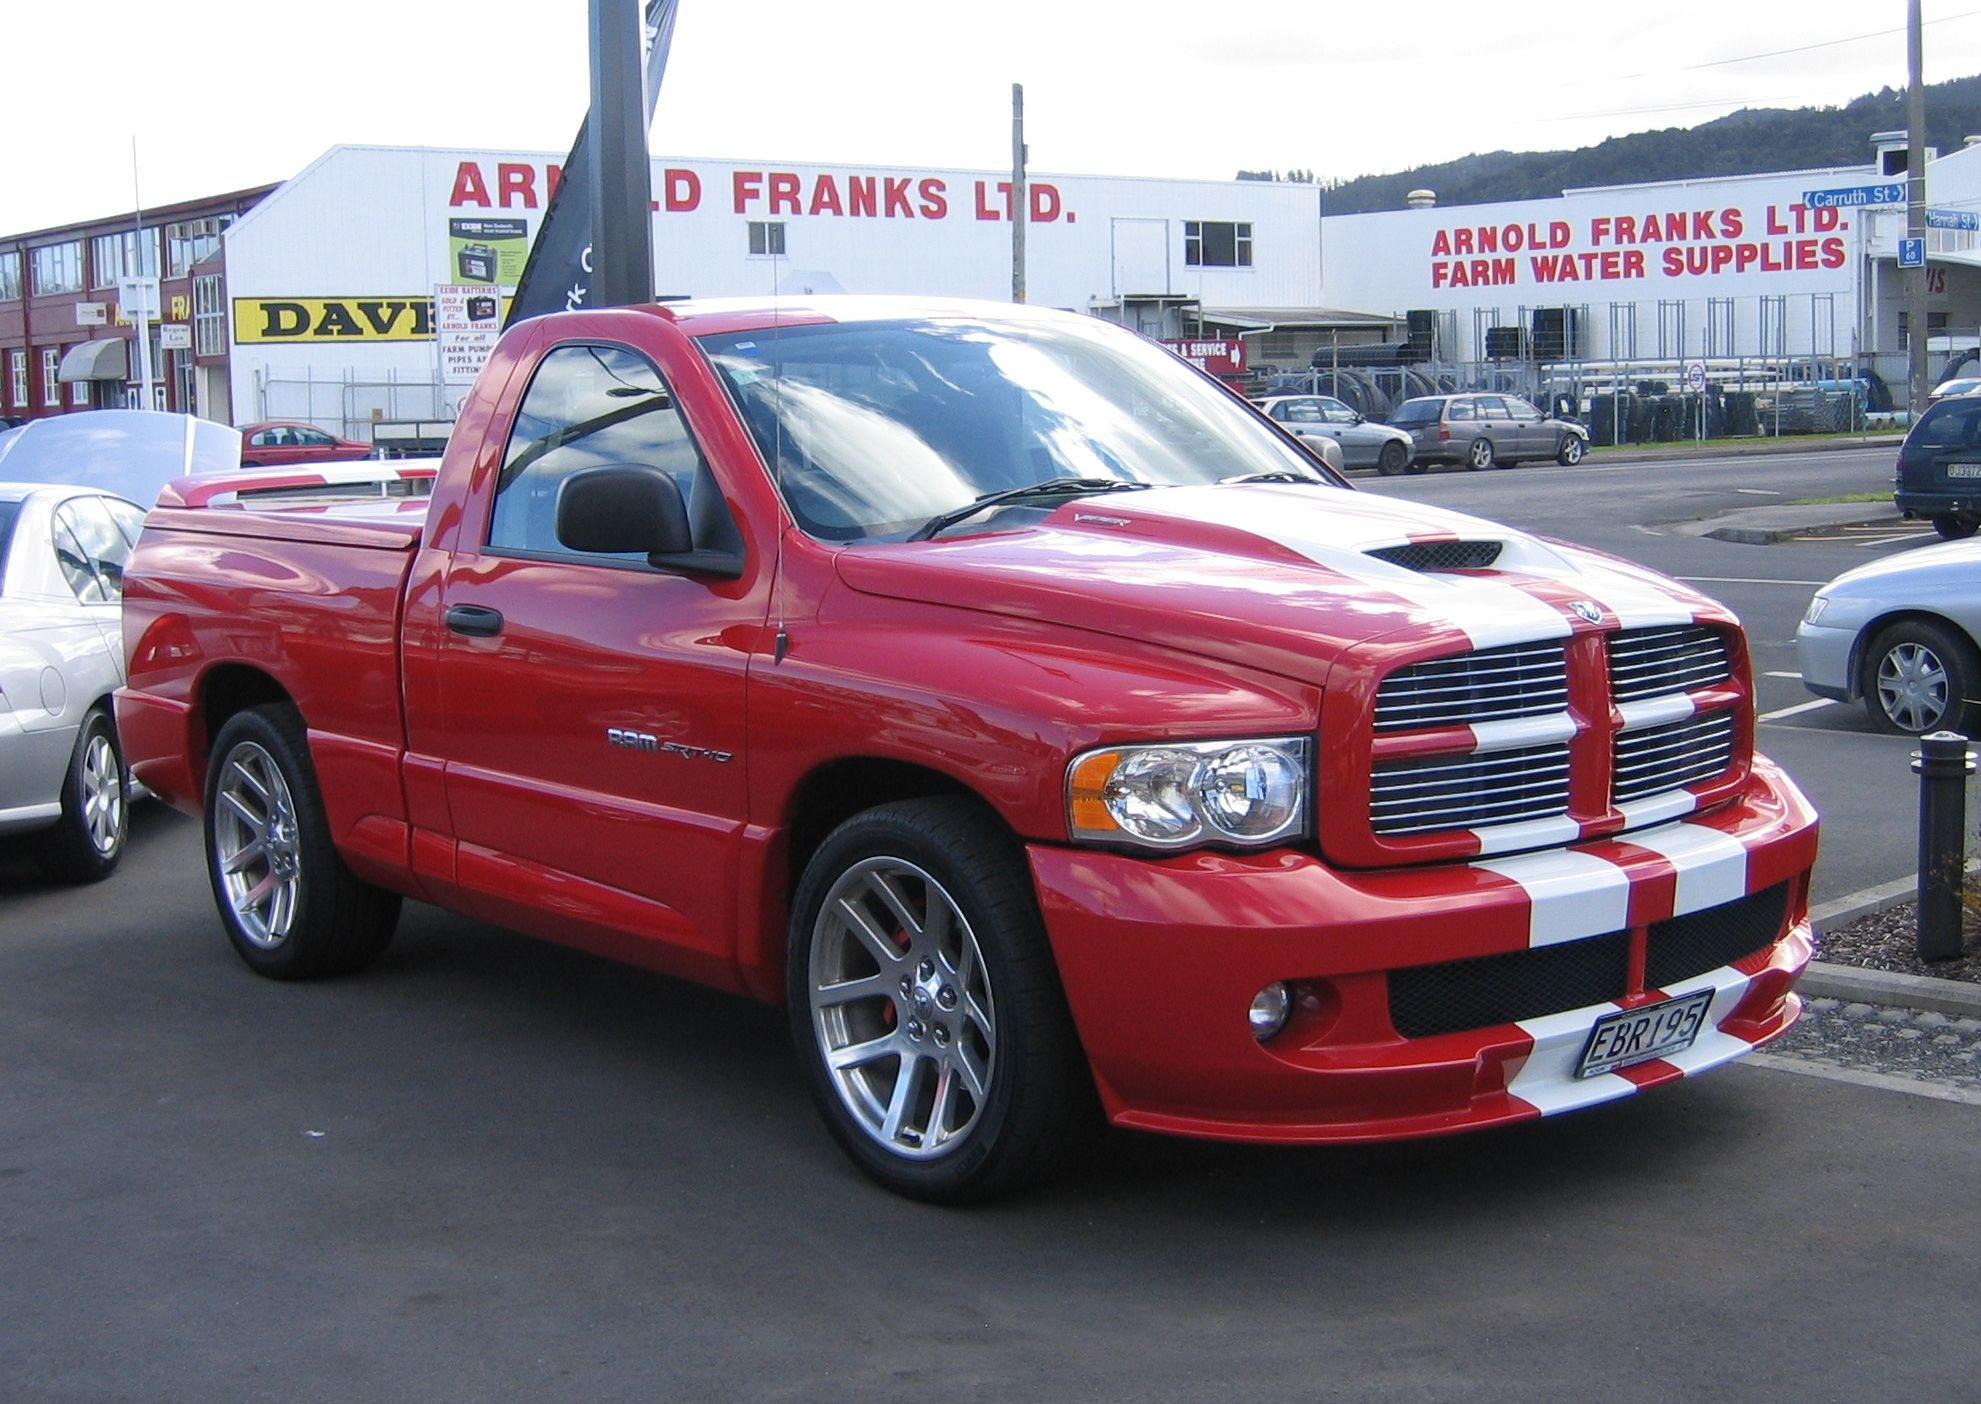 Red with white stripe Dodge Ram SRT 10 dodge ram